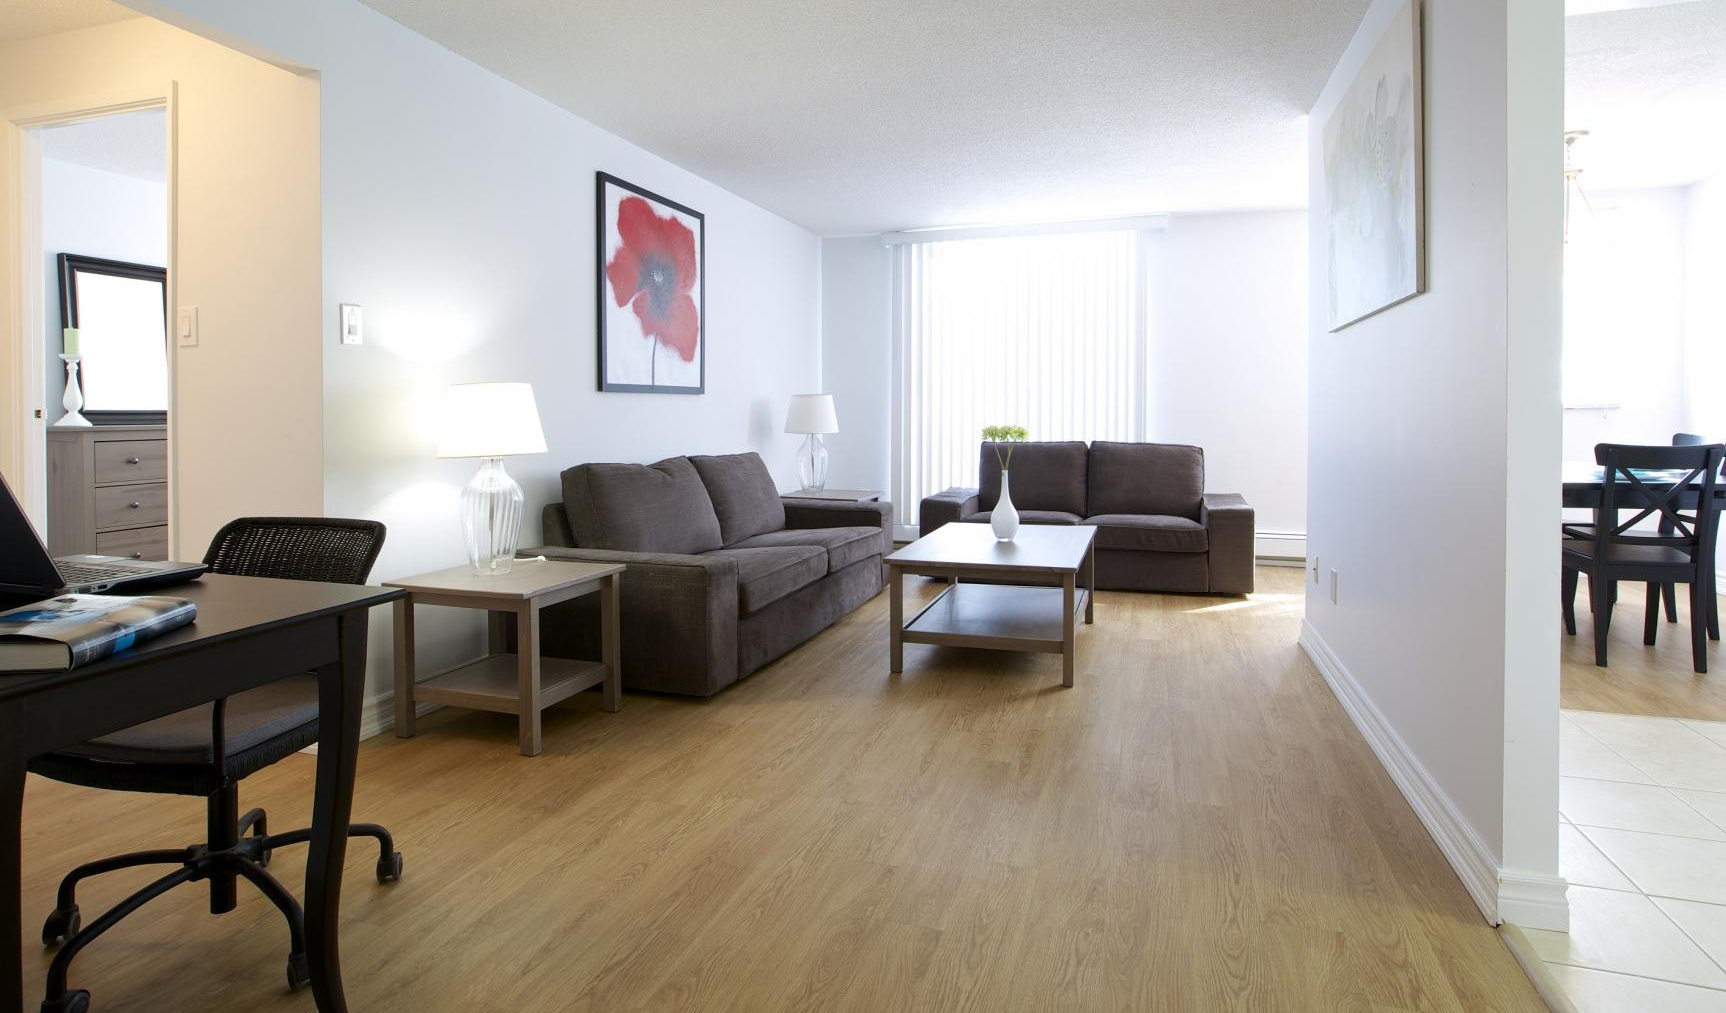 Laminate Flooring Kitchener 310 320 Kingswood Drive Kitchener Is For Rent